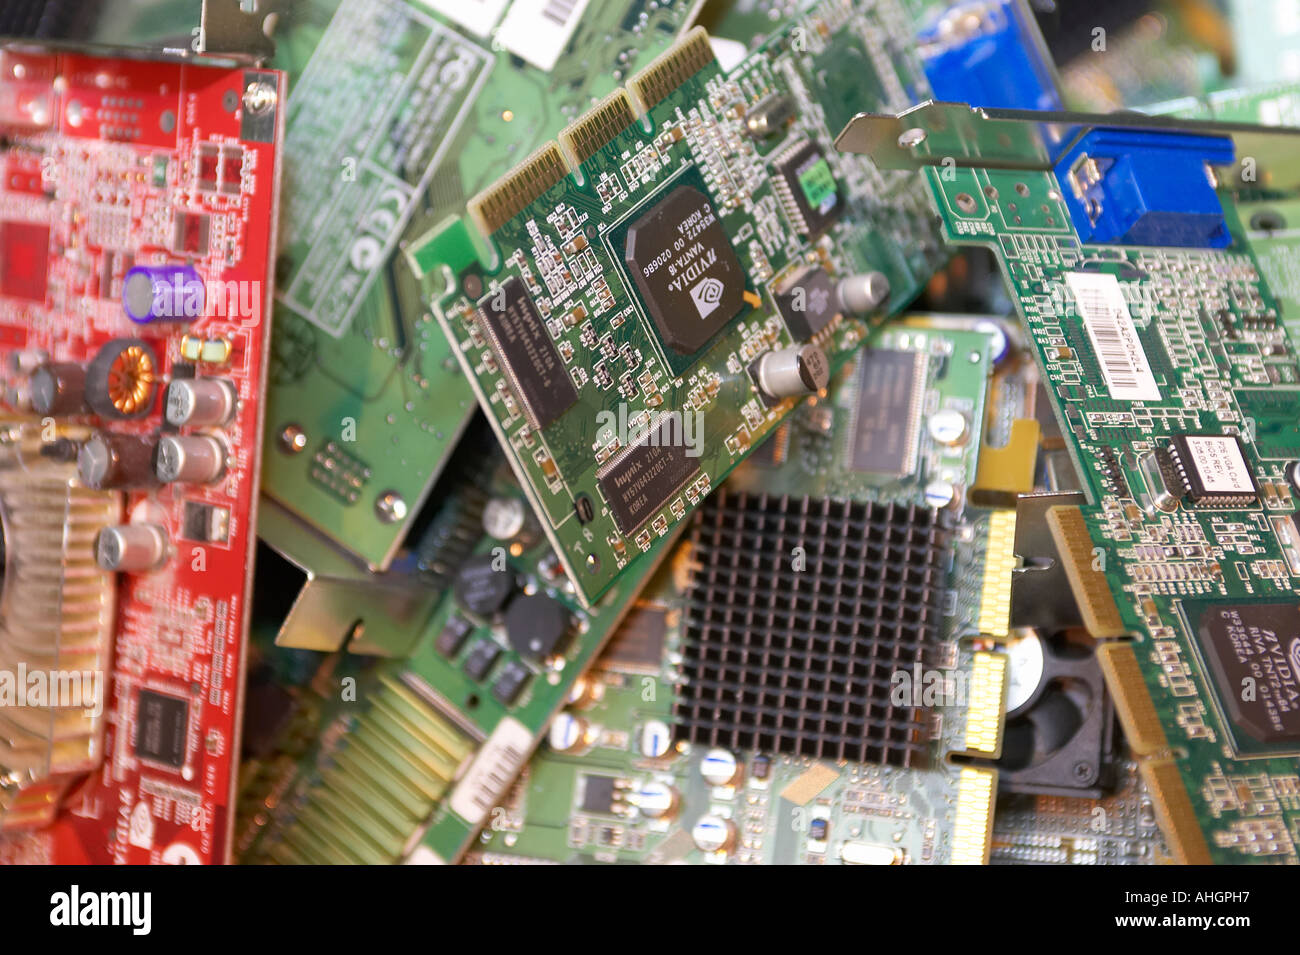 various computer component internal circuit boards including video card in a pile waiting to be recycled - Stock Image